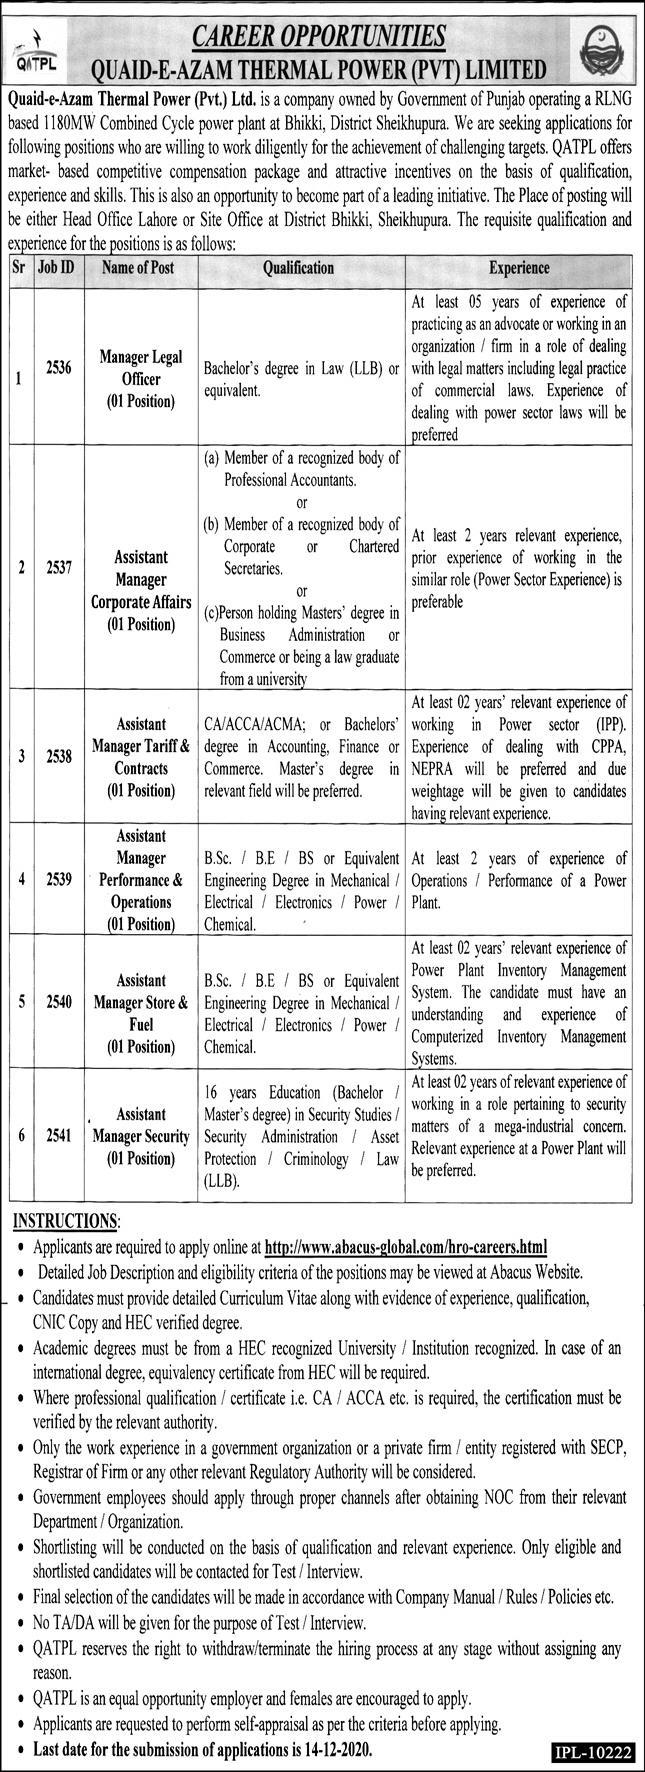 Quaid e Azam Thermal Power Pvt Ltd Jobs December 2020